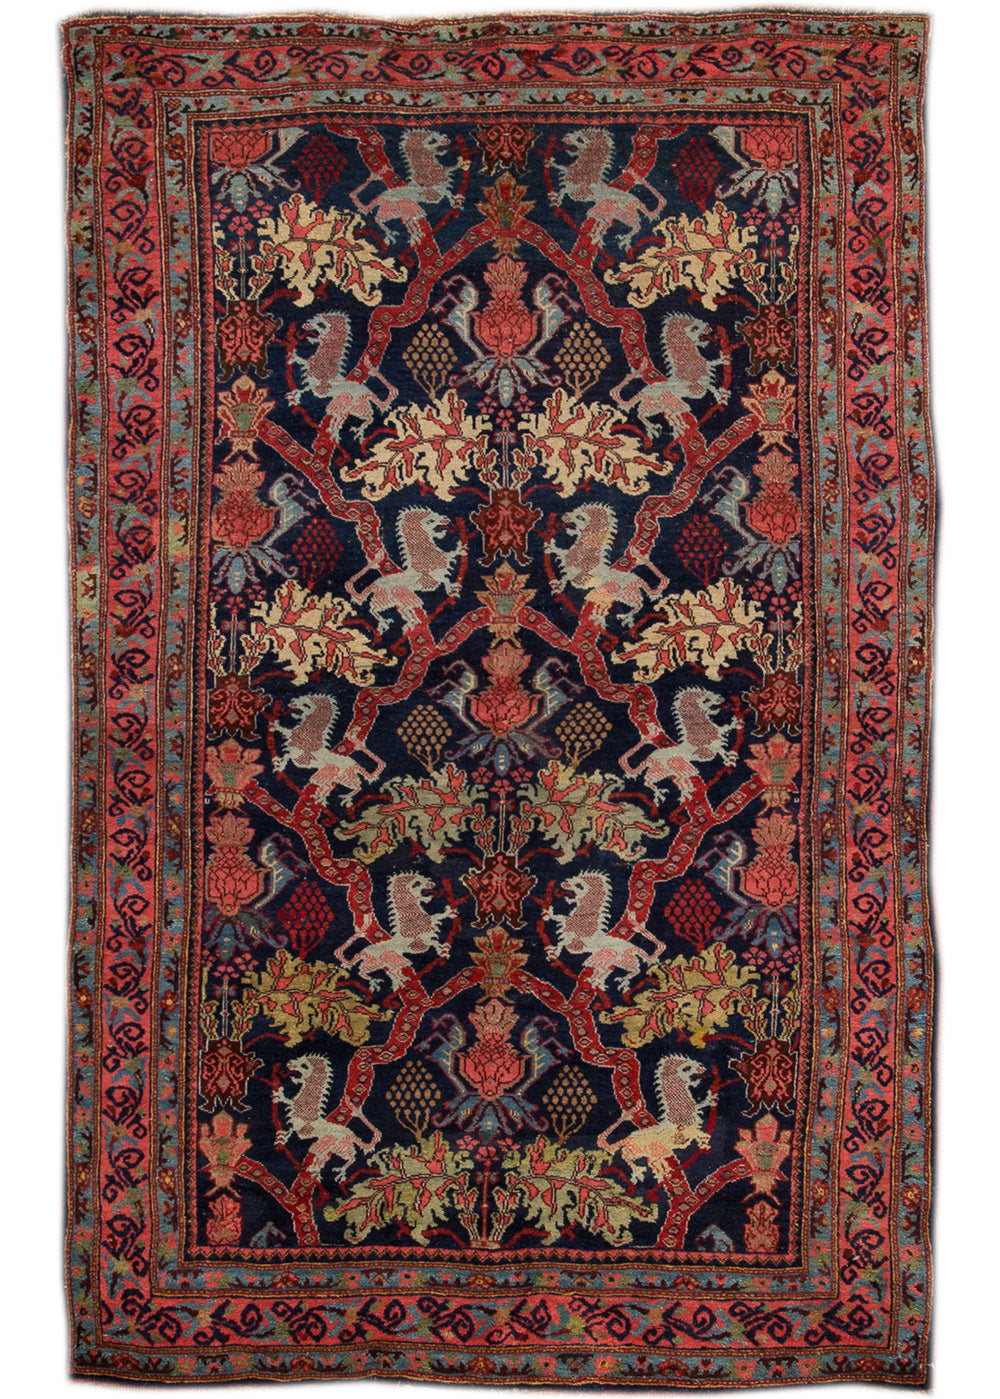 Antique Bidjar Rug, 4X7